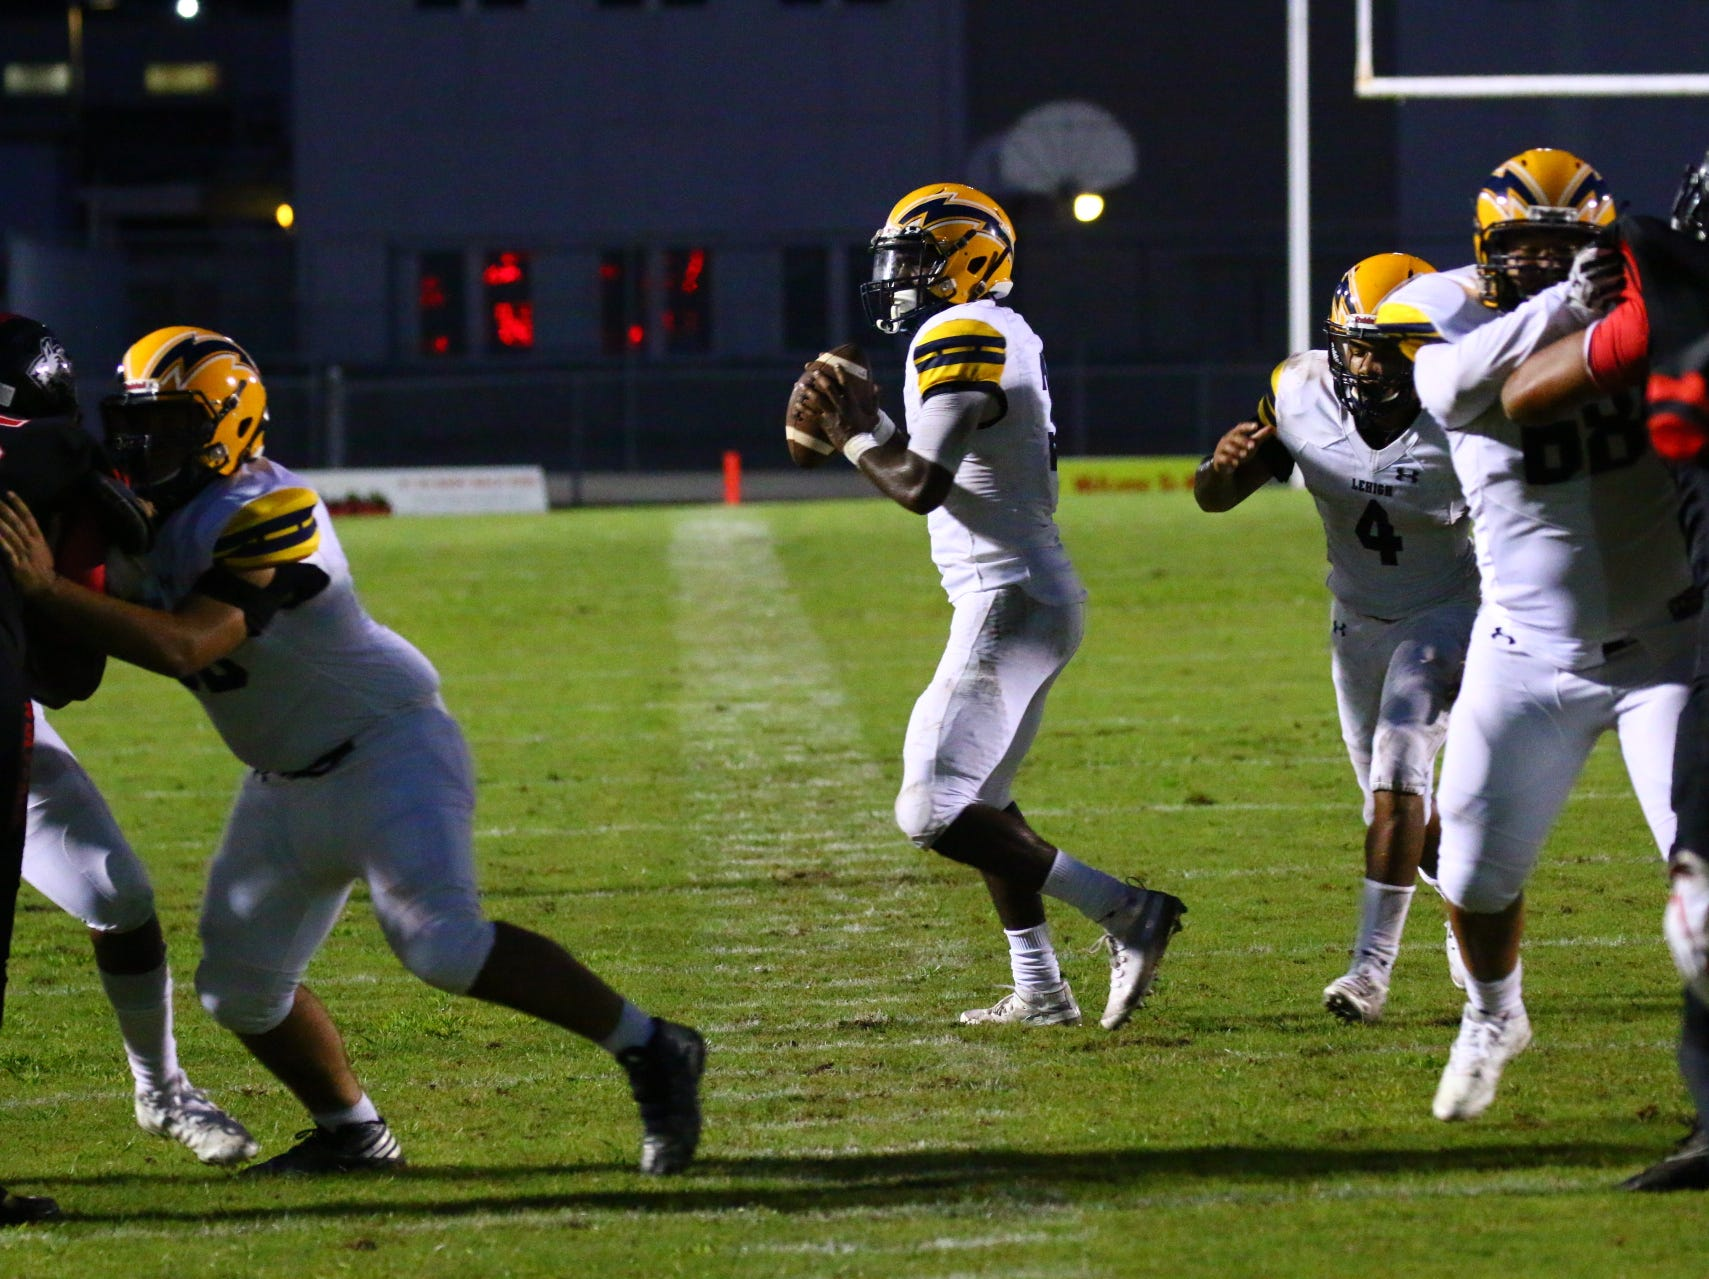 Lehigh visited South Fort Myers and beat the Wolfpack 27-13 on Friday, Sept. 7, 2018.